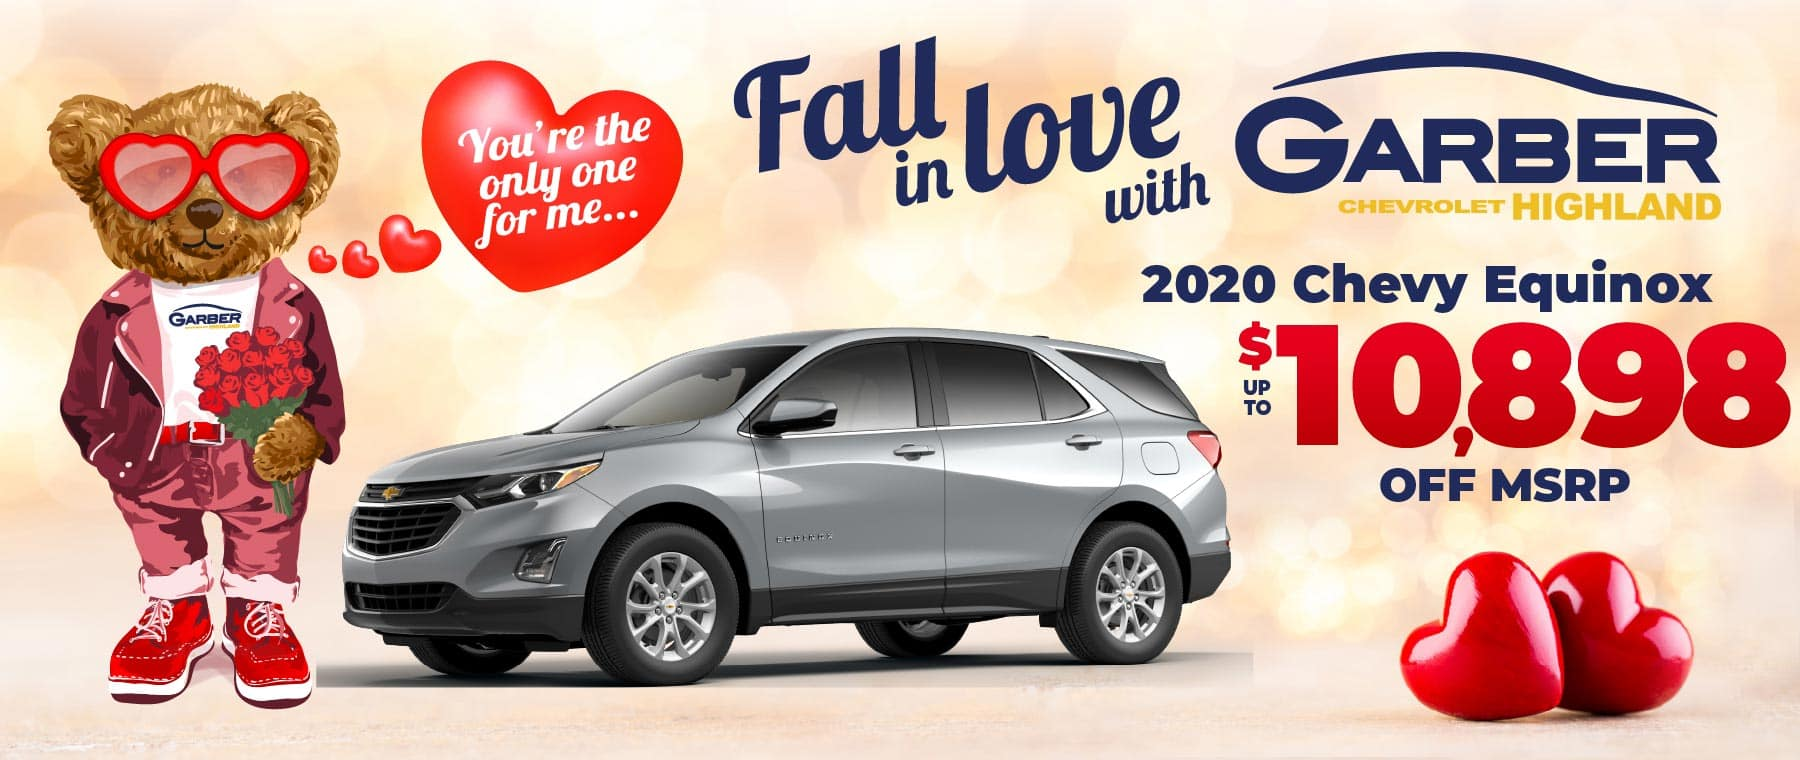 2020 Chevy Equinox - up to $10,898 off MSRP